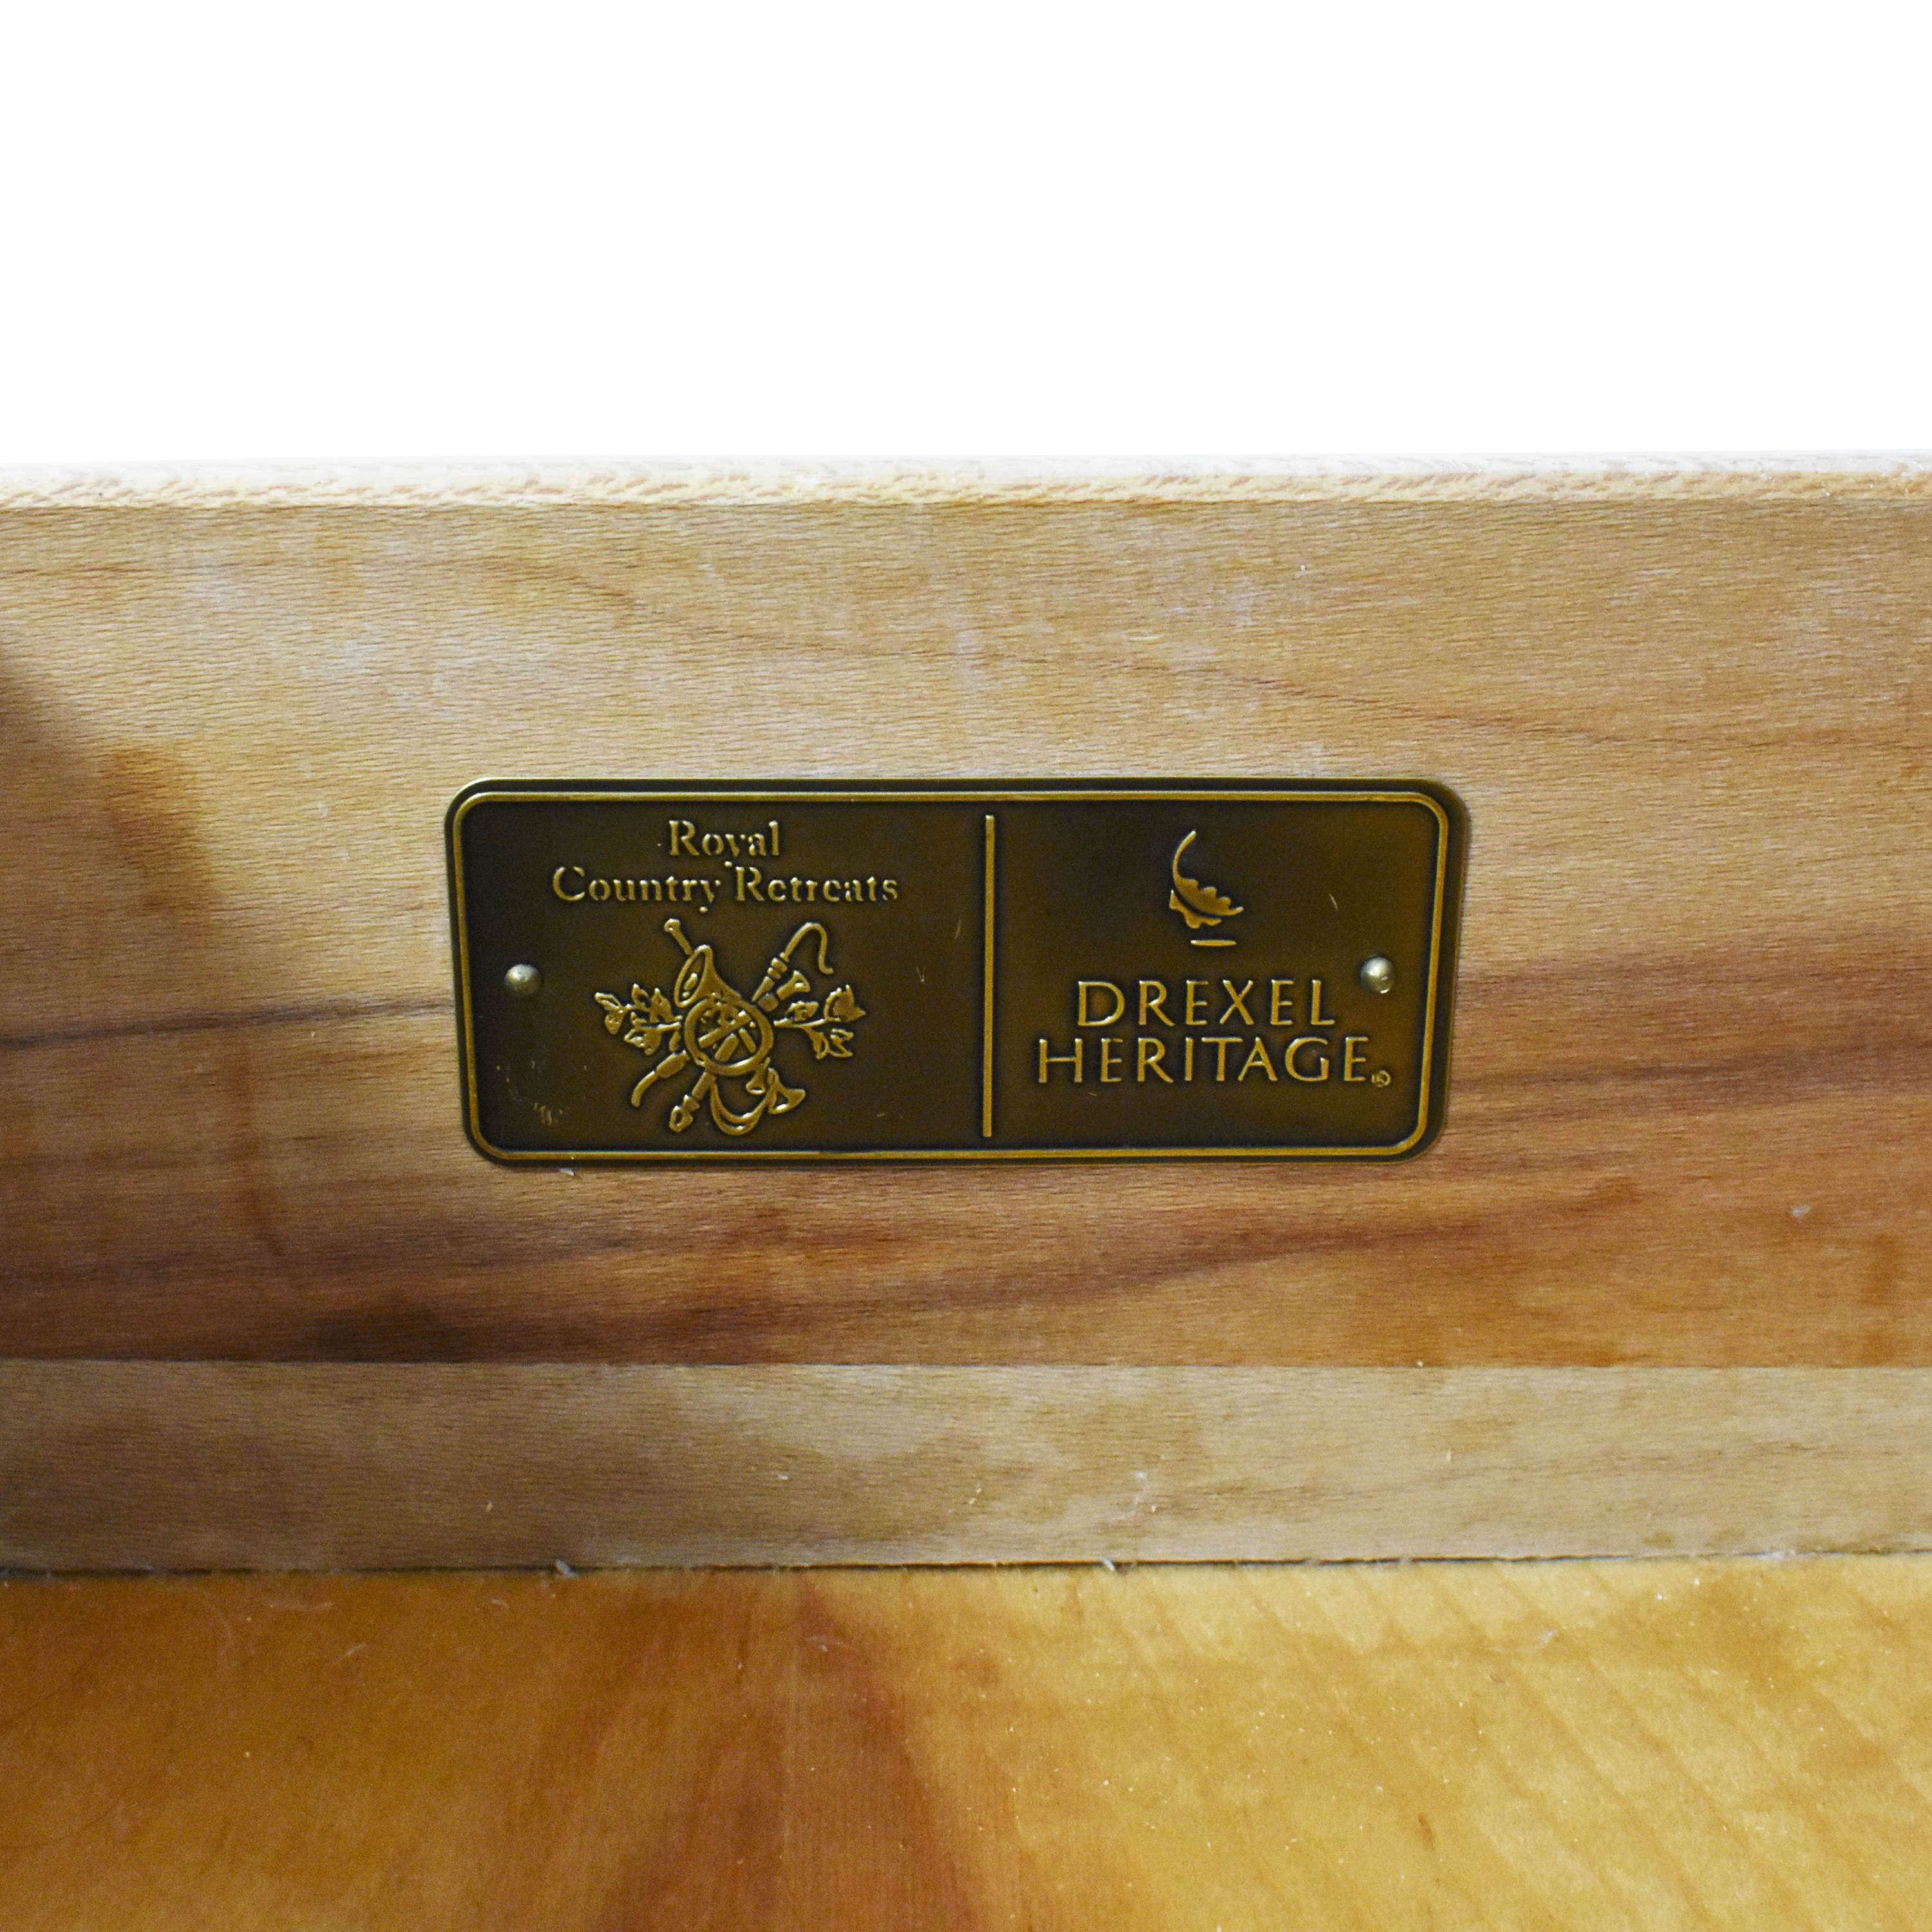 Drexel Heritage Royal Country Retreats Chest Drexel Heritage